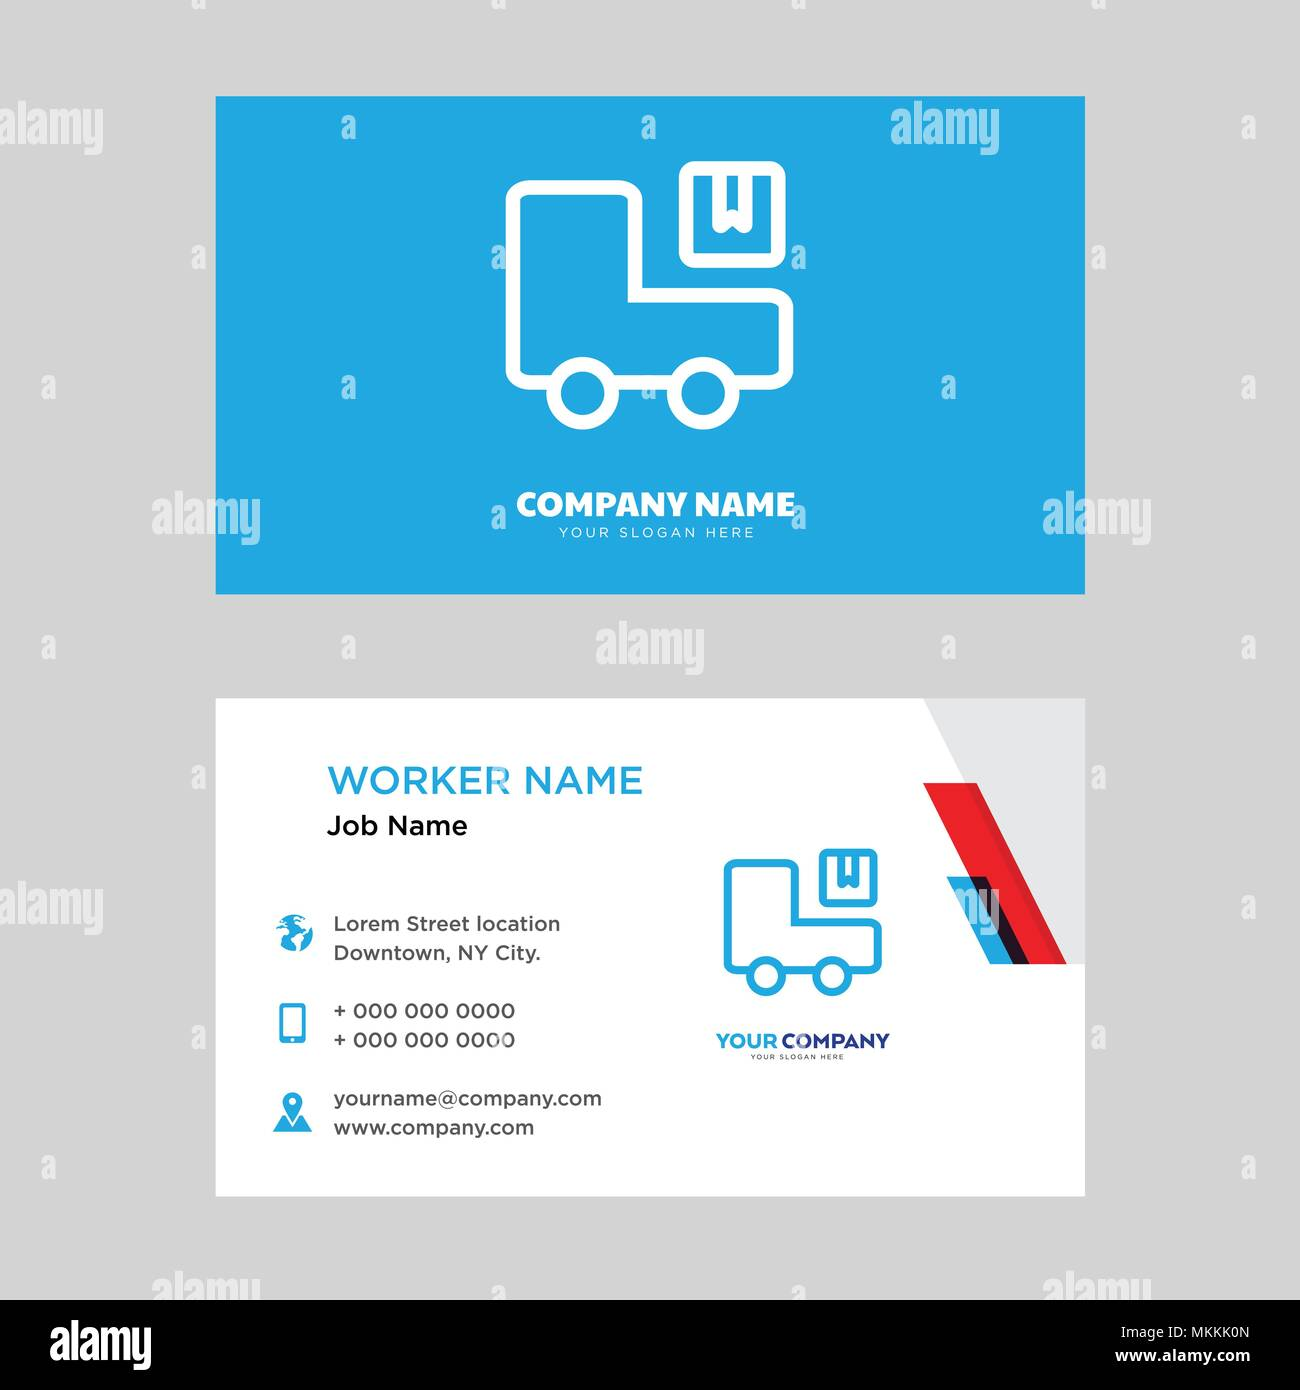 Logistics business card design template visiting for your company logistics business card design template visiting for your company modern horizontal identity card vector reheart Images